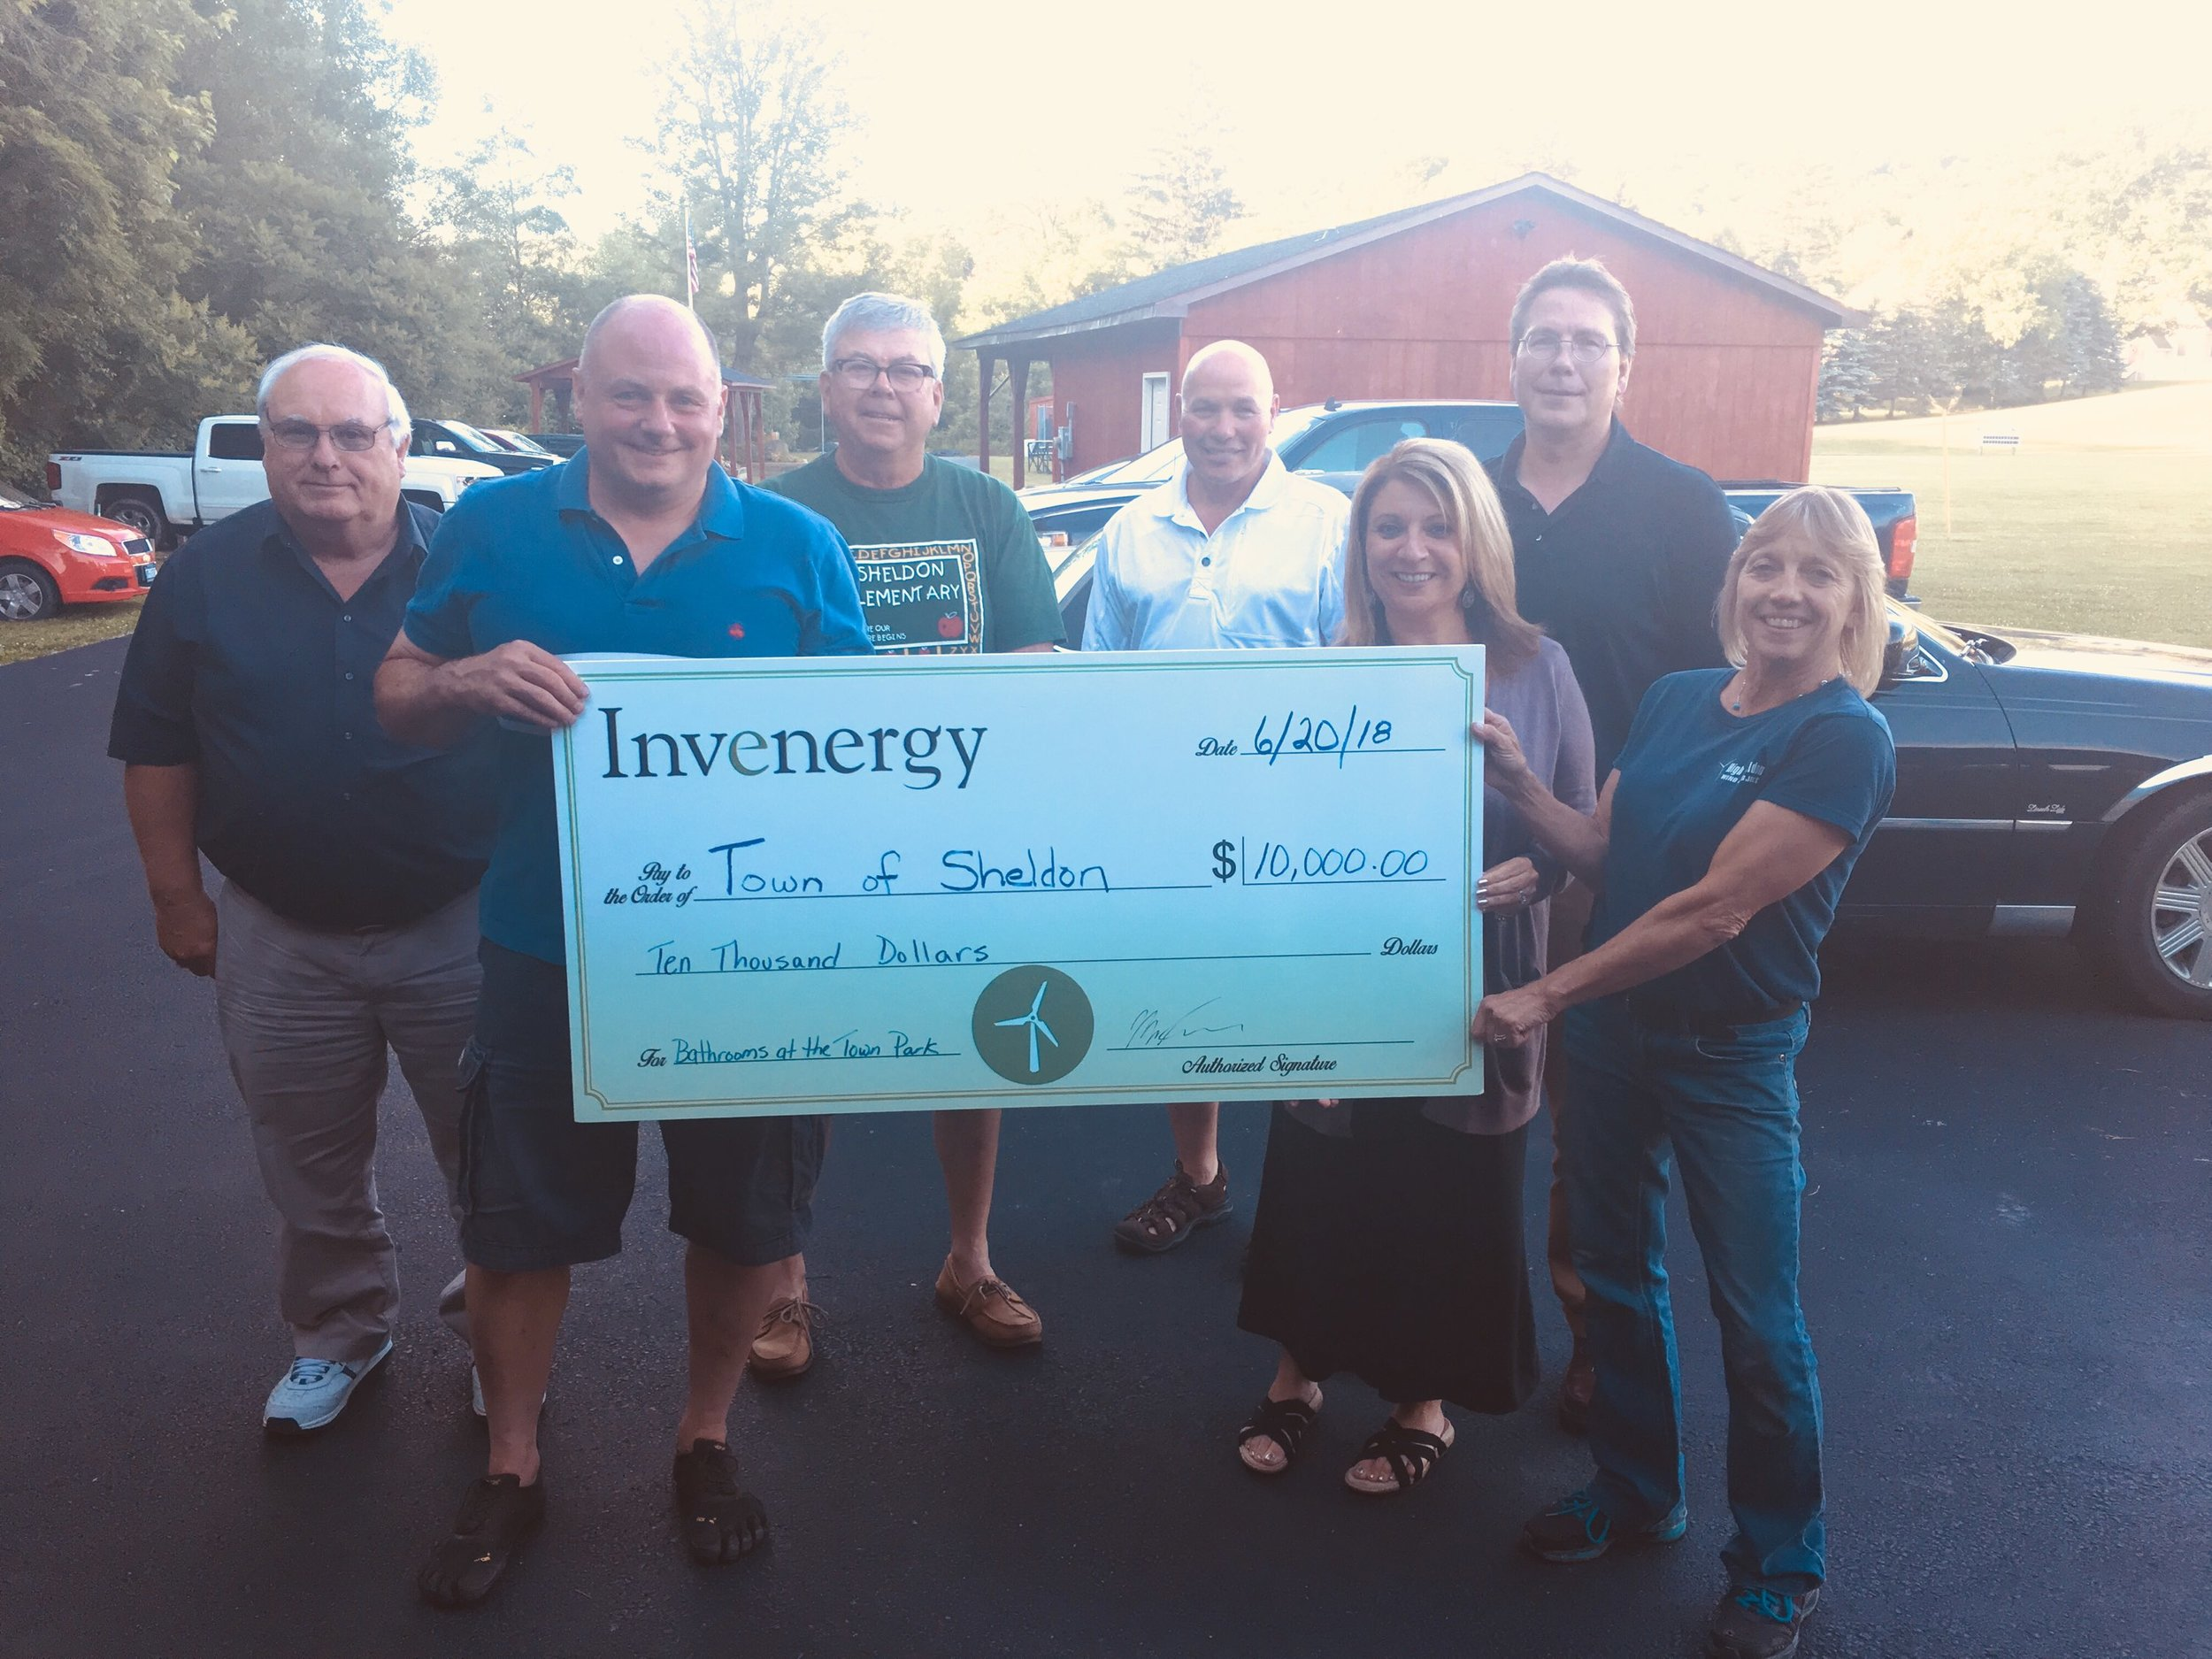 June 20, 2018:  A check presentation from Invenergy to the Sheldon Town Board to pay for remodeled bathrooms for the town park. Invenergy donated $5,000 on behalf of Sheldon Wind Energy Center and $5,000 on behalf of Orangeville Wind Energy Center.